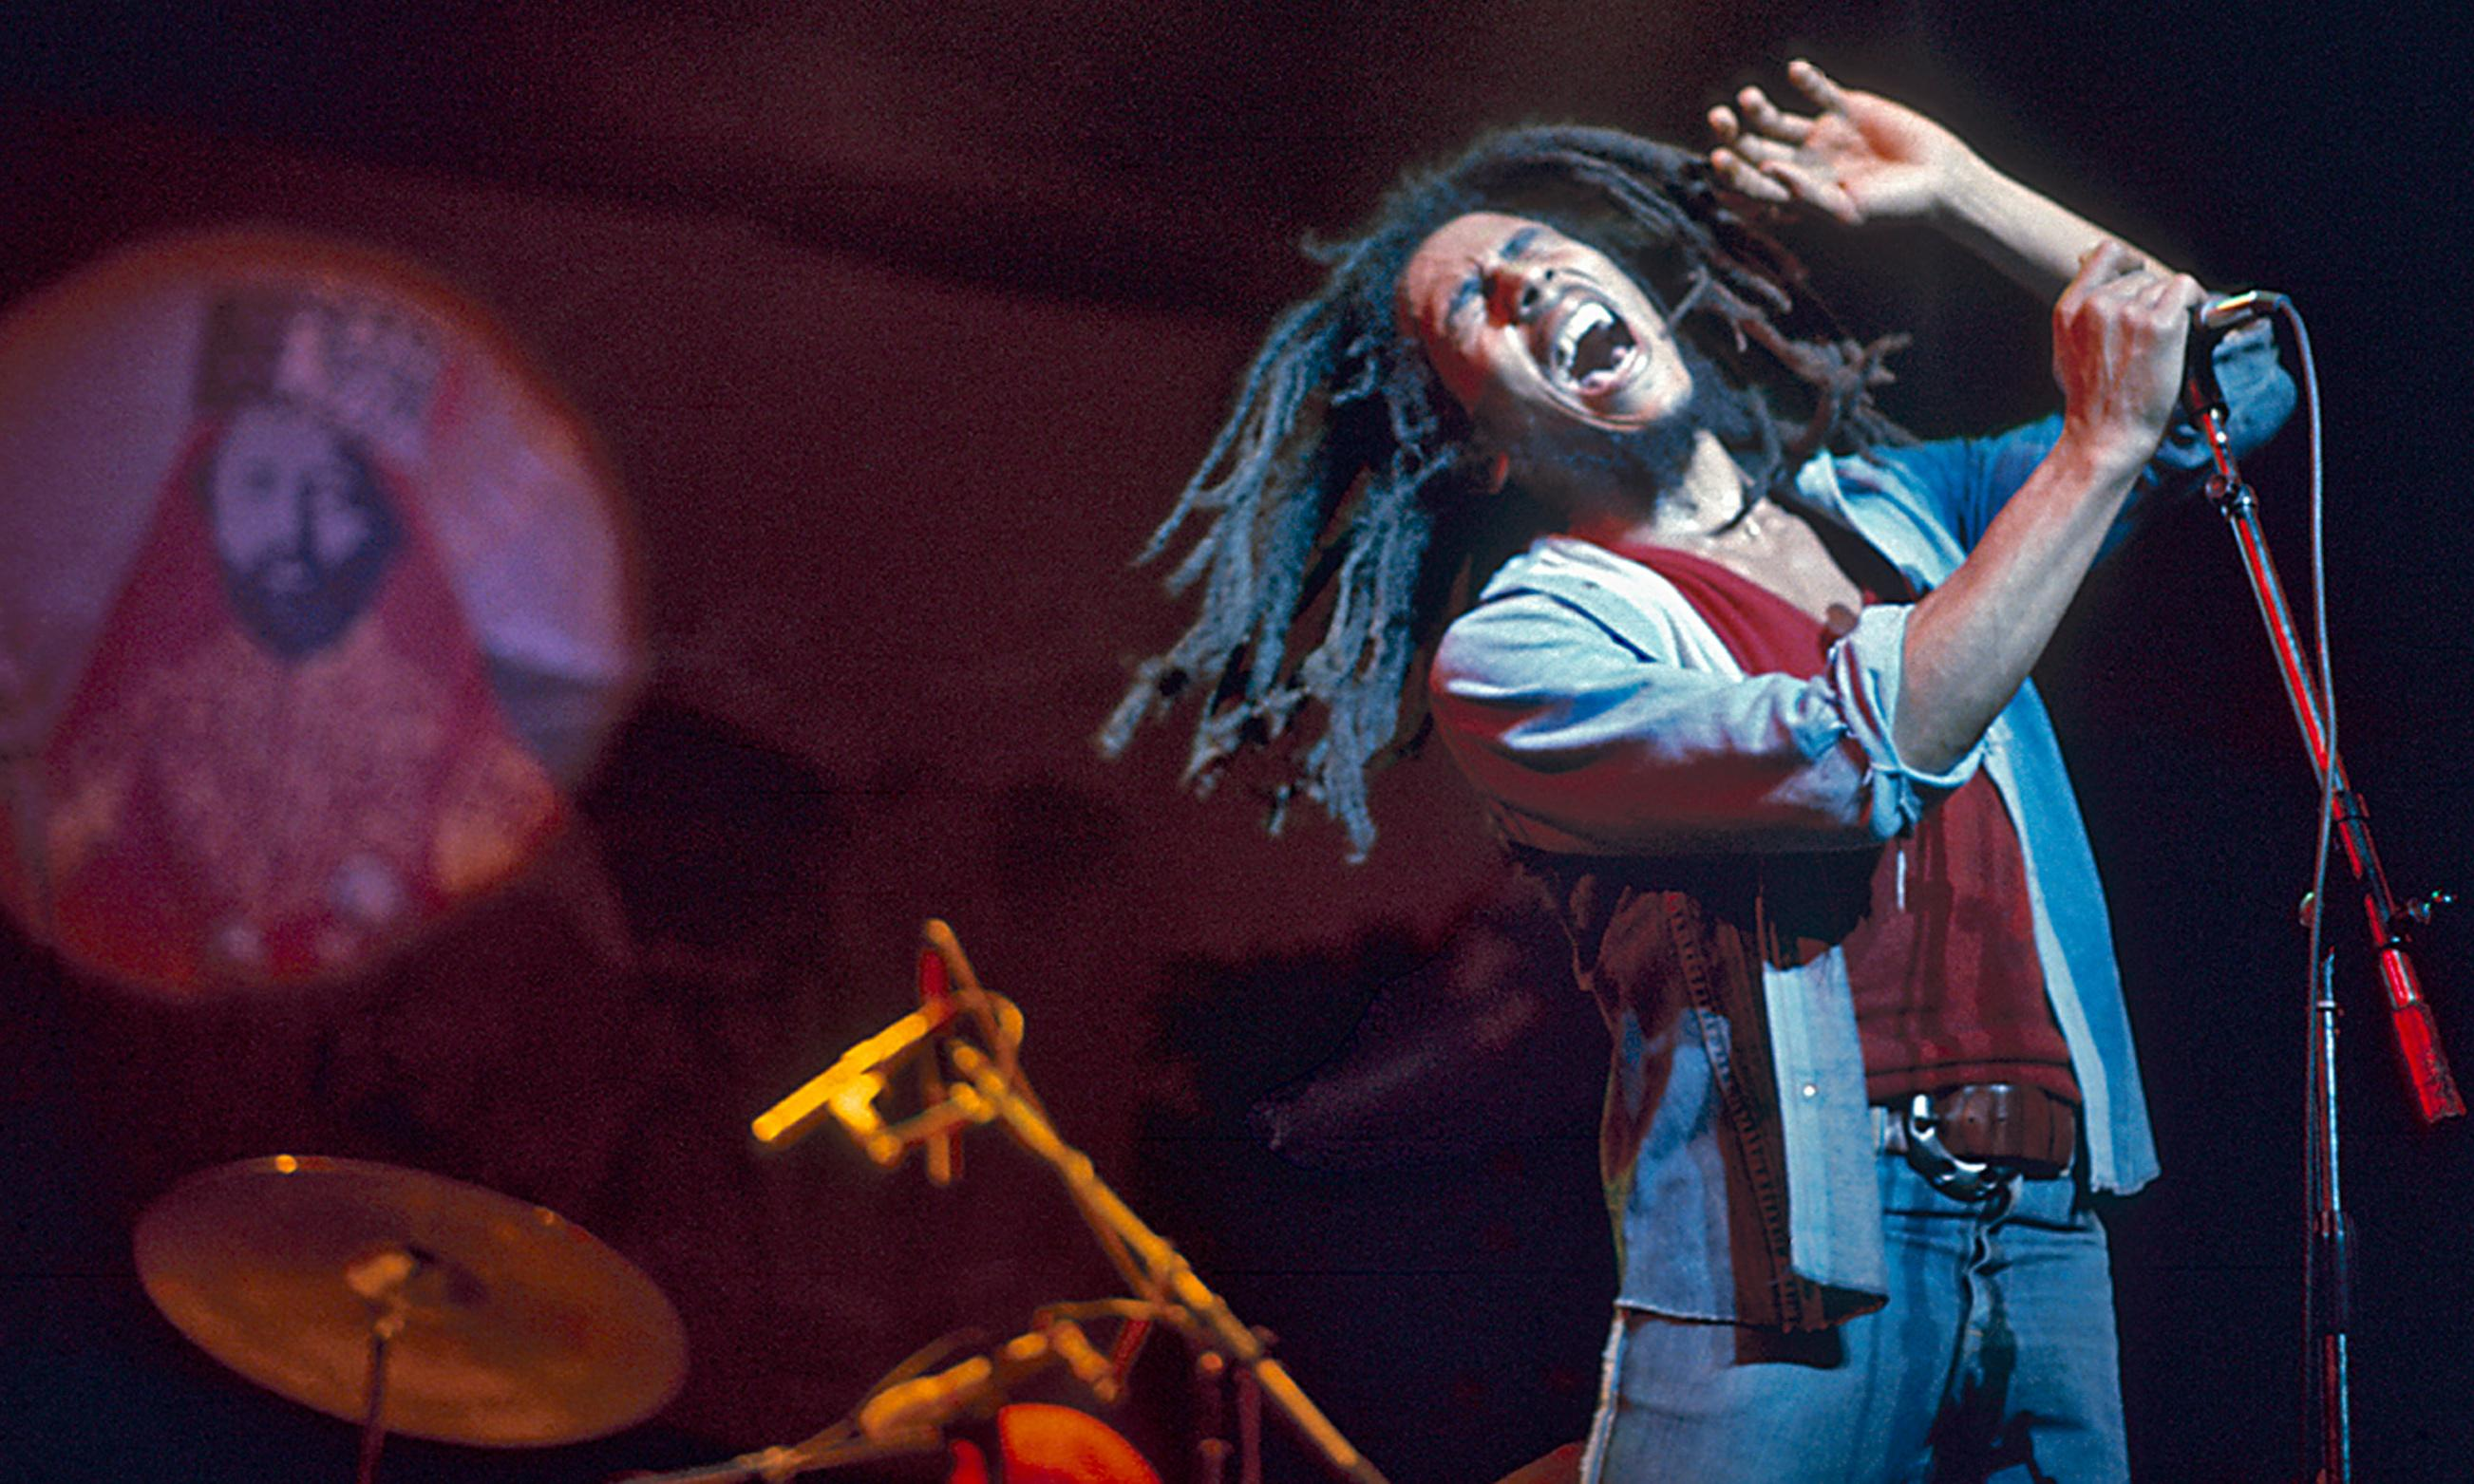 Lost Bob Marley live recordings rescued from hotel basement